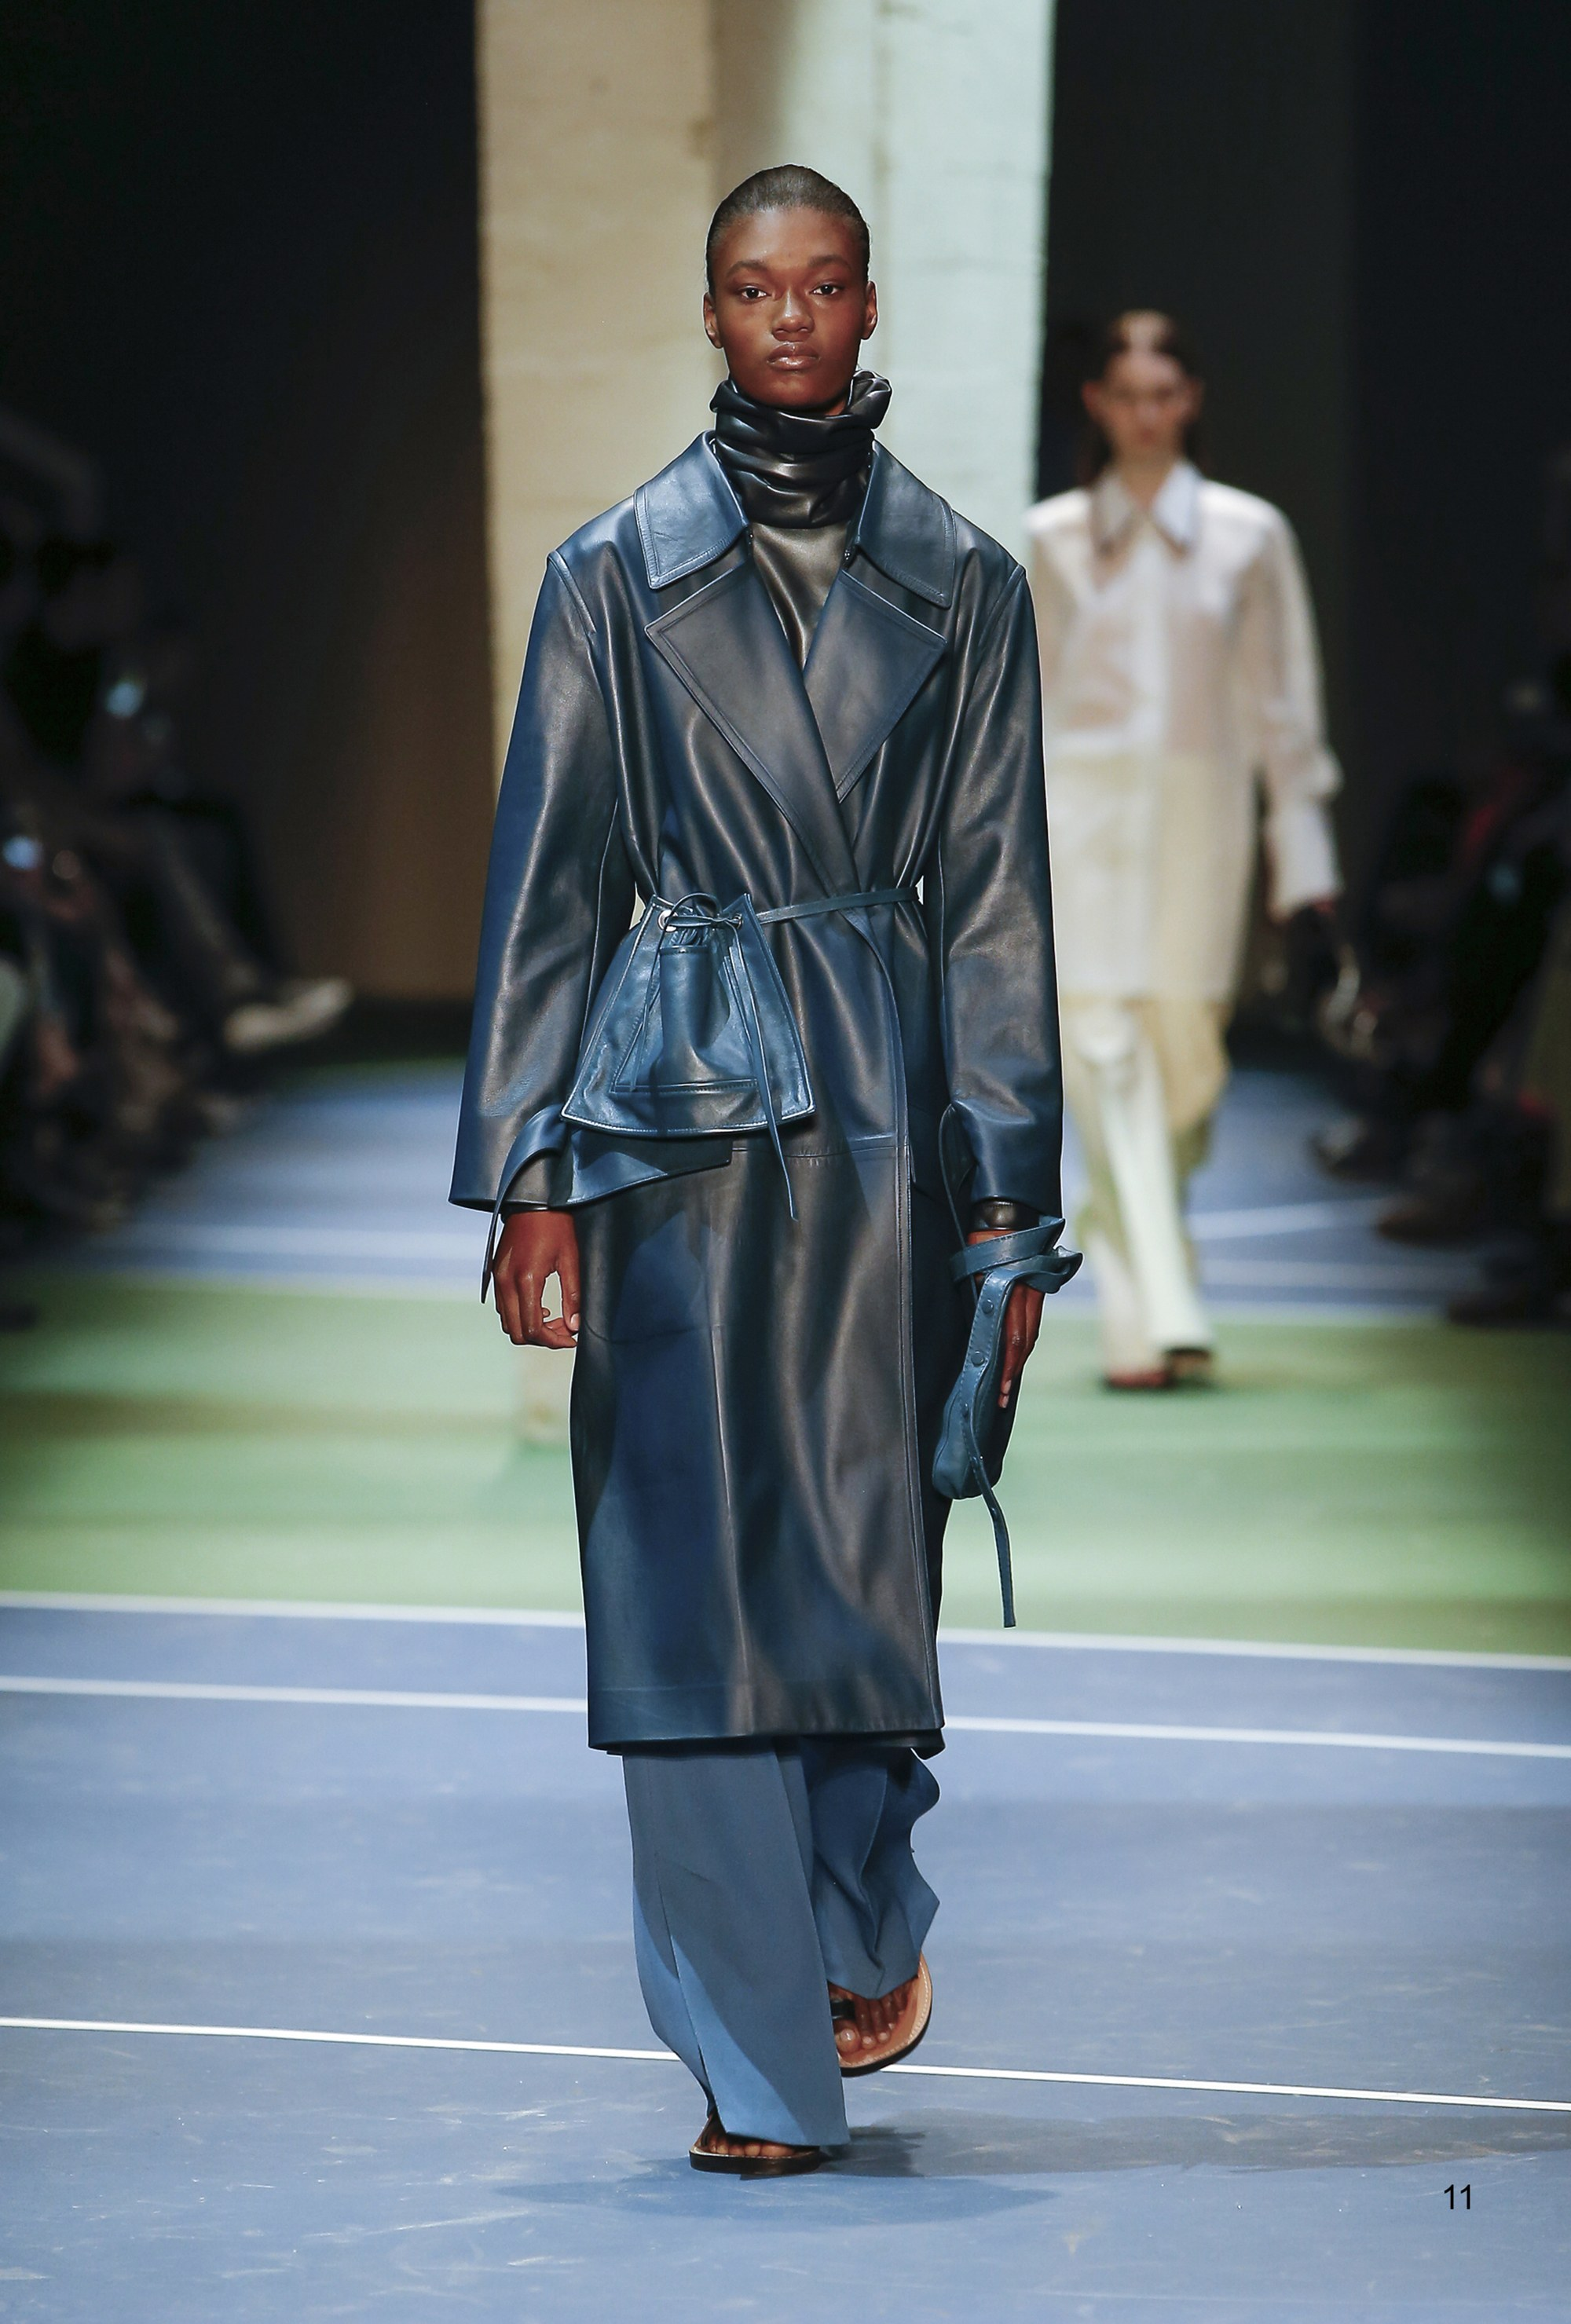 Top Runway Looks At Paris Fashion Week 2016 Islamic Fashion Design Council